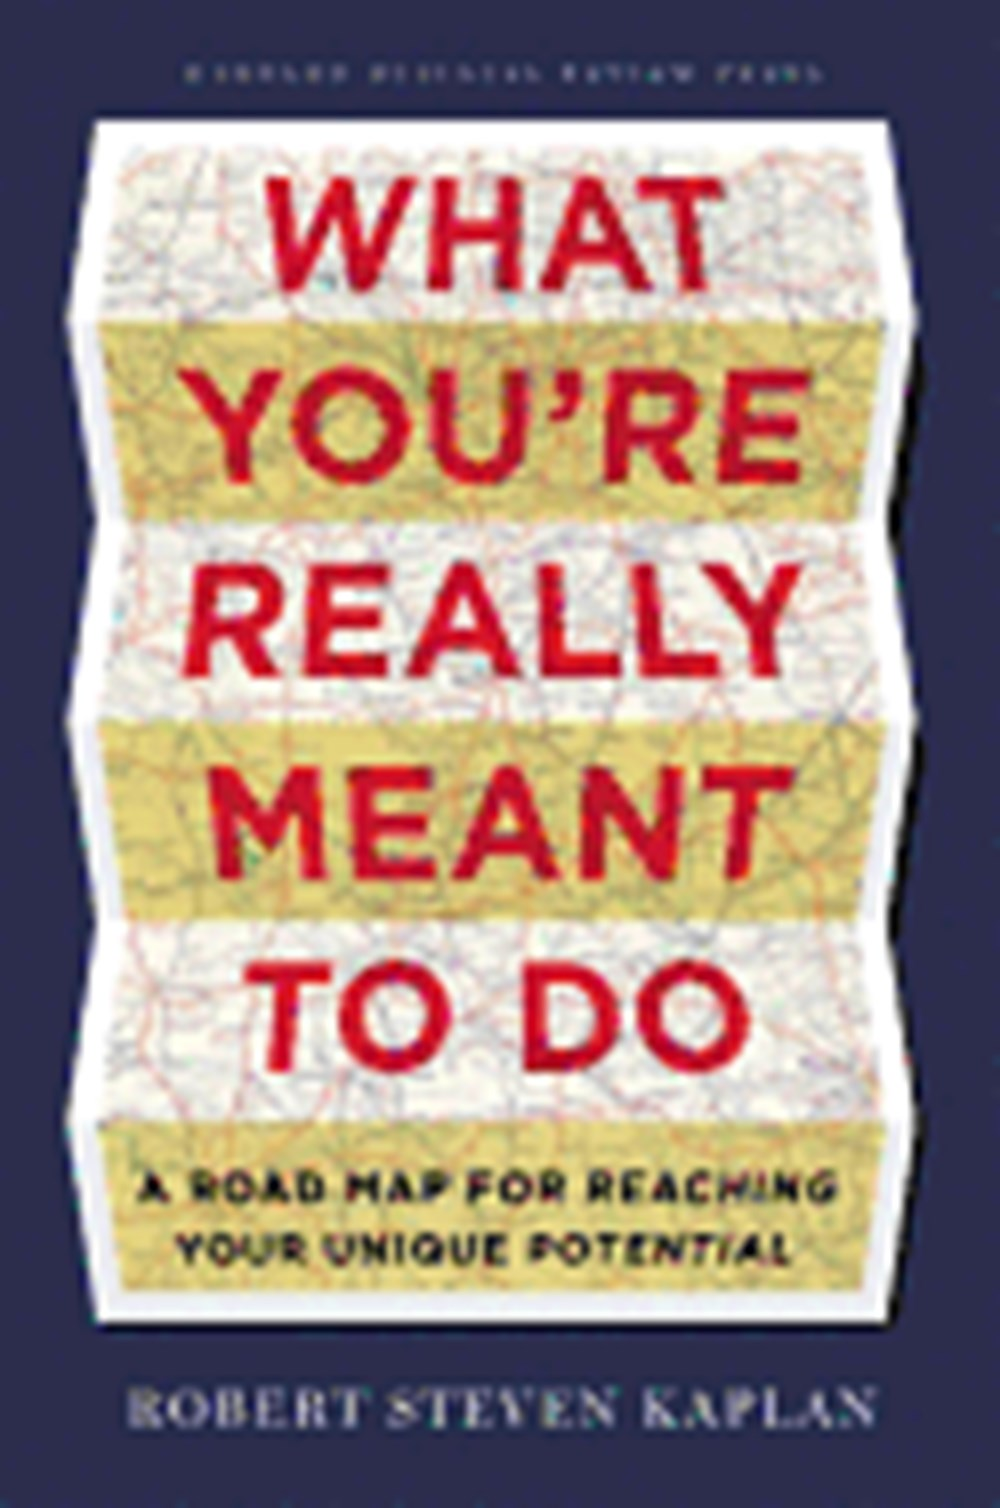 What You're Really Meant to Do A Road Map for Reaching Your Unique Potential